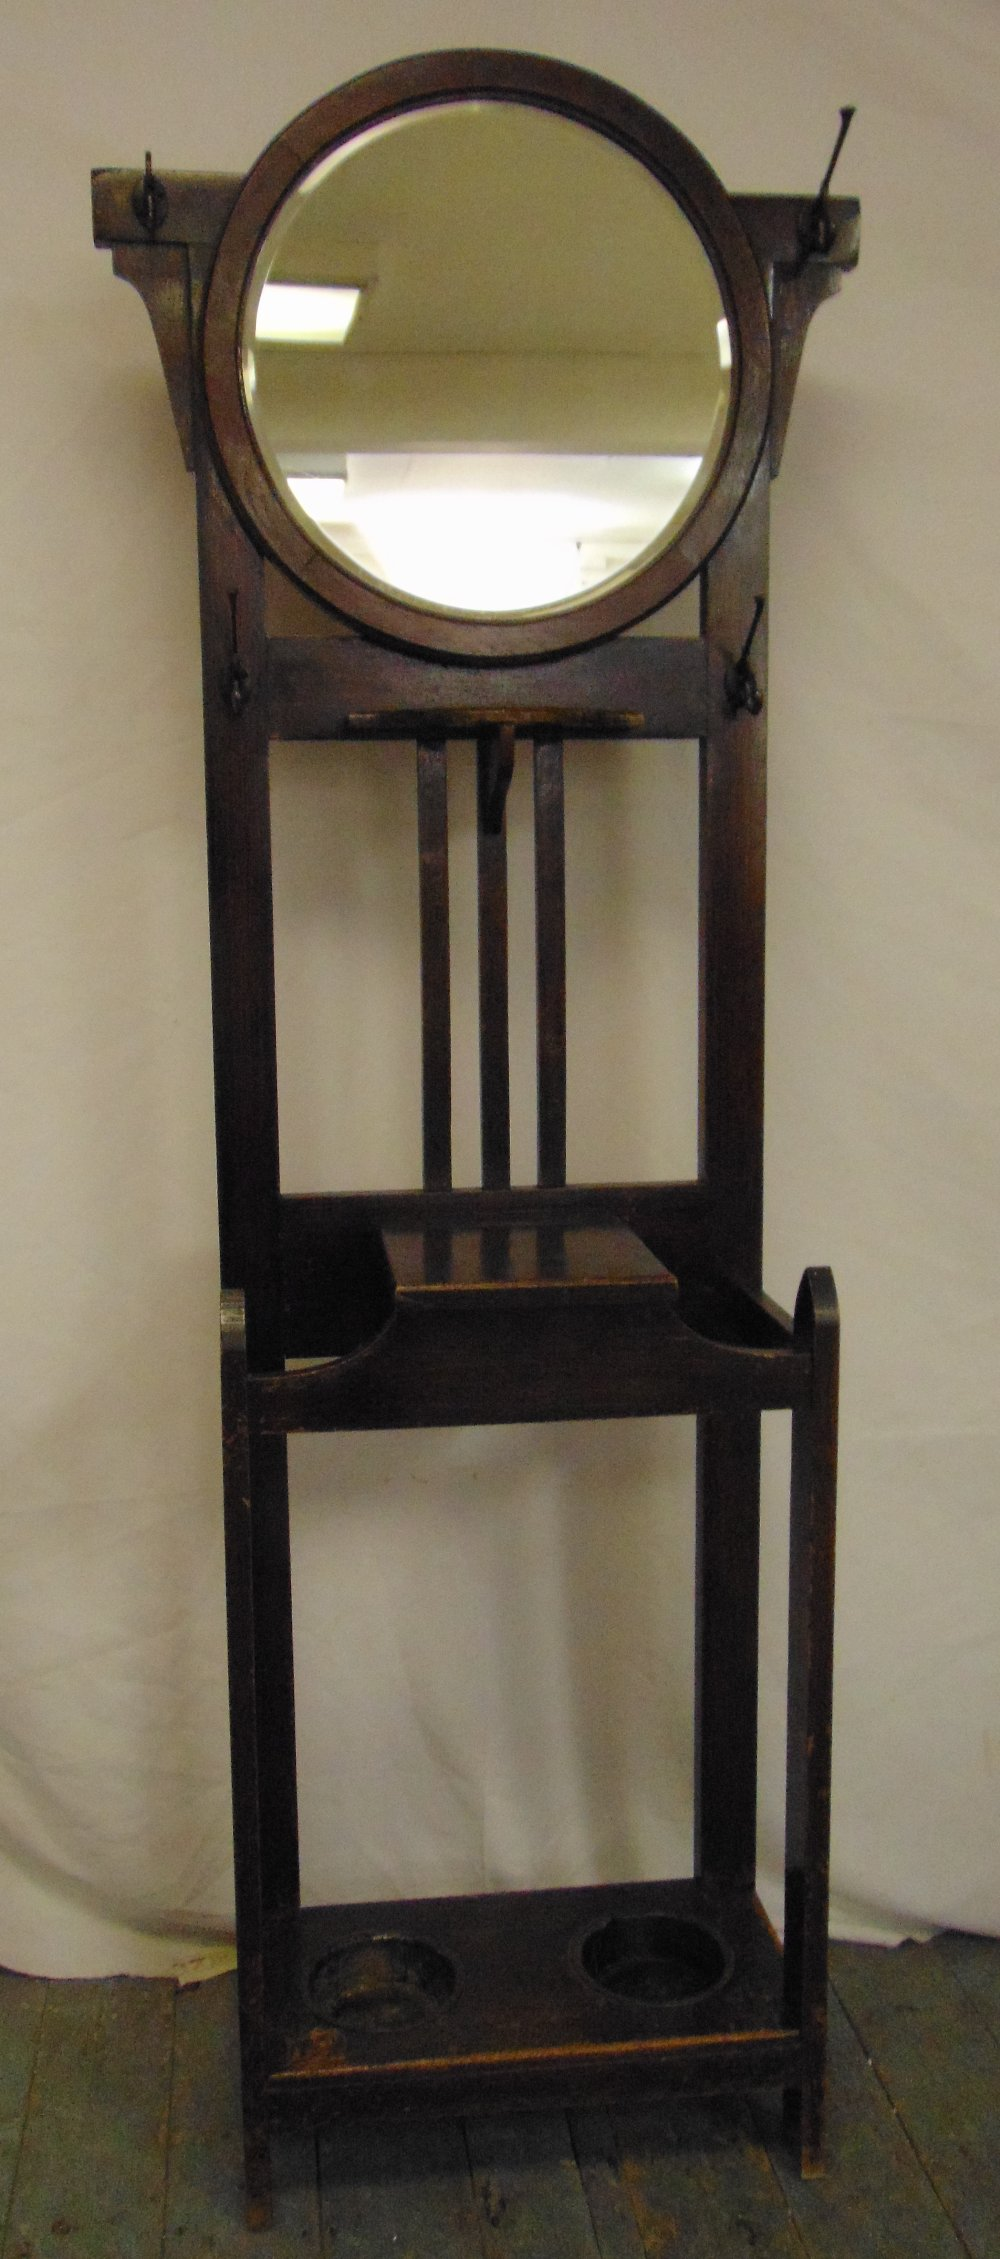 Lot 22 - A Victorian oak hall hat stand in arts and crafts form with oval mirror and integrated umbrella